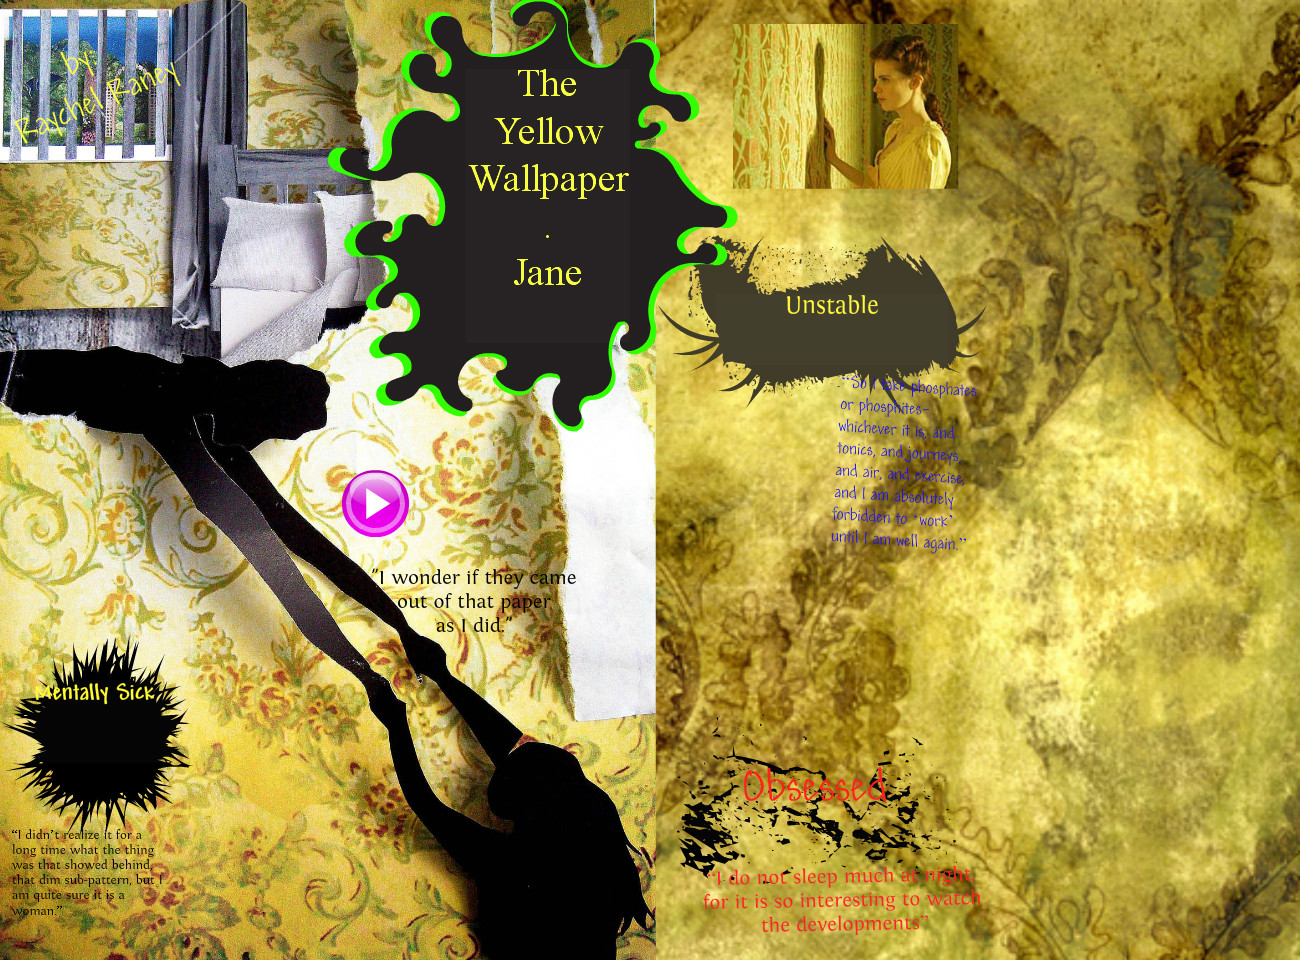 the yellow wallpaper sparknotes read the wallpaper genre epub 1300x960